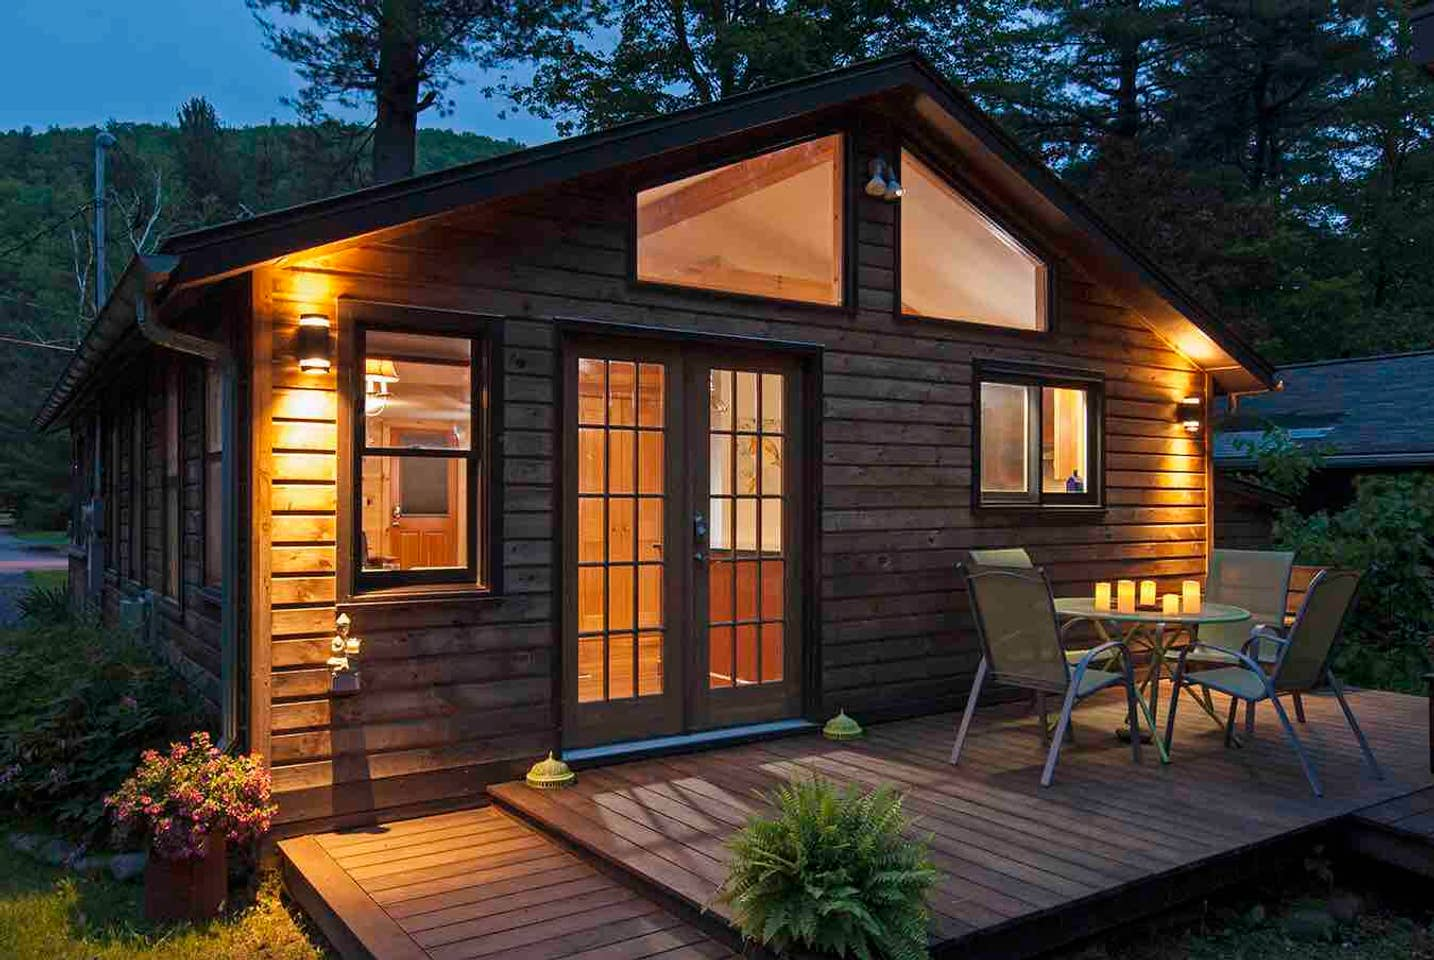 Best Catskills Airbnbs: HGTV bungalow, octagon home, more unique spots to rent now